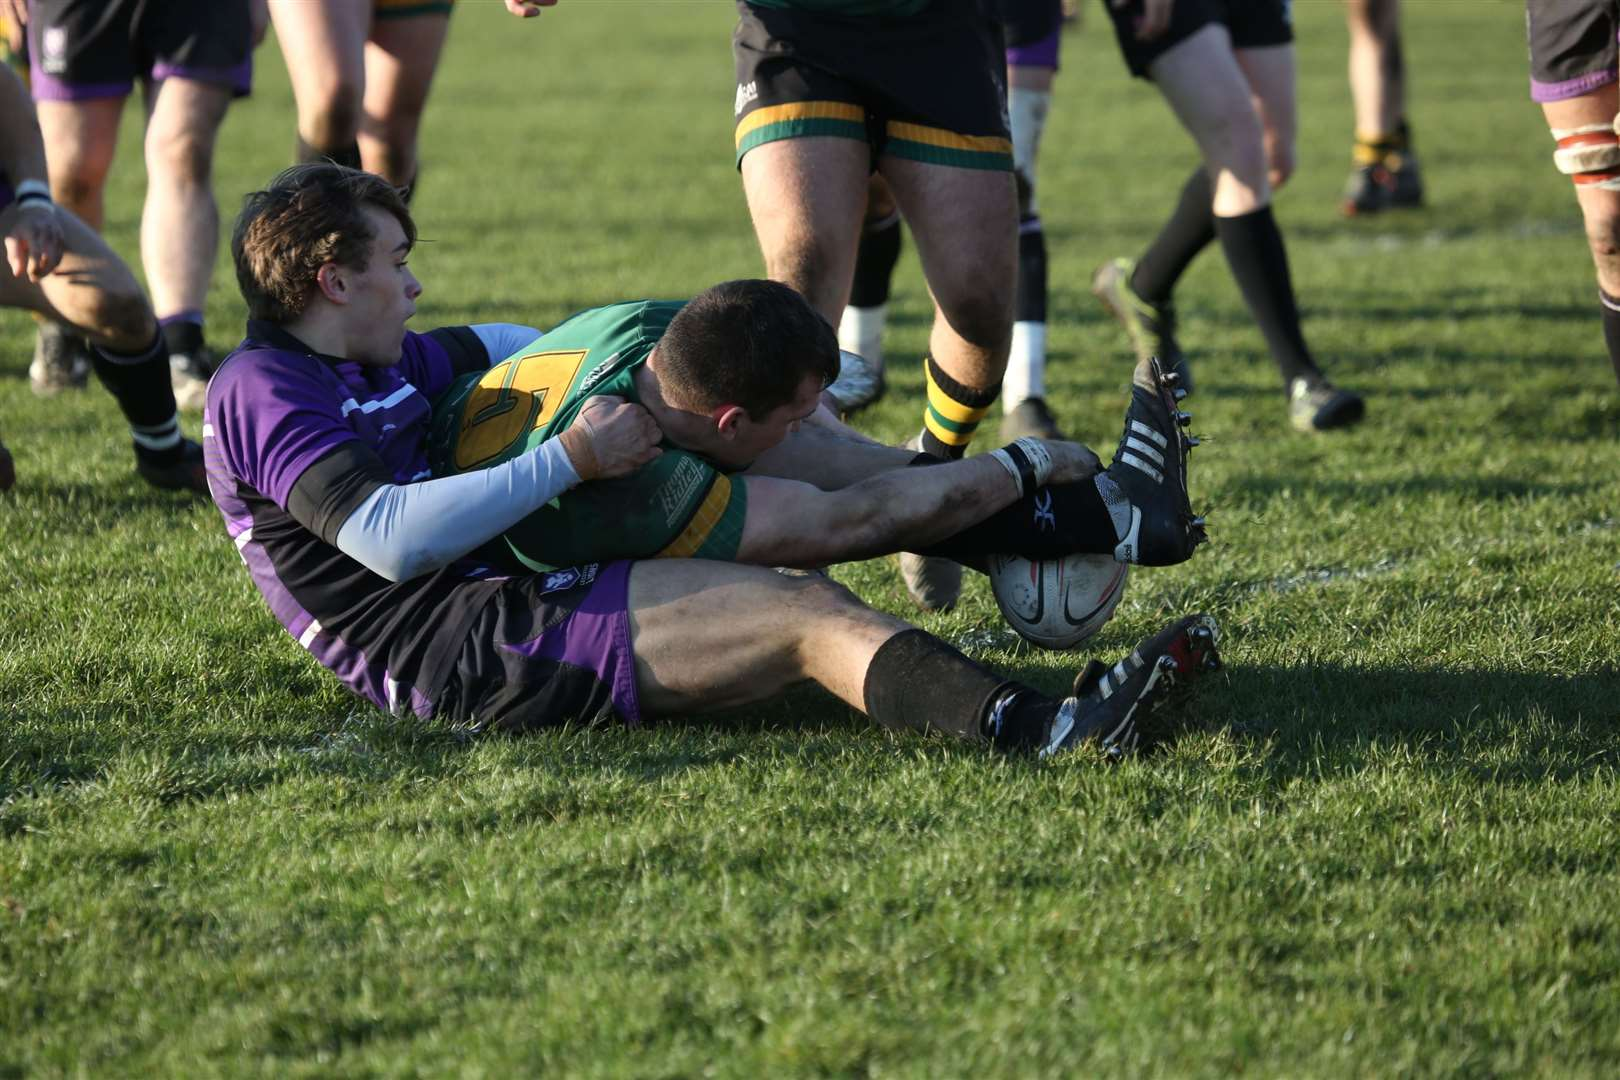 Bury St Edmunds rugby v Leicester Lions - Tanner Lightfoot runs in a tryPicture: Shawn Pearce(28835913)